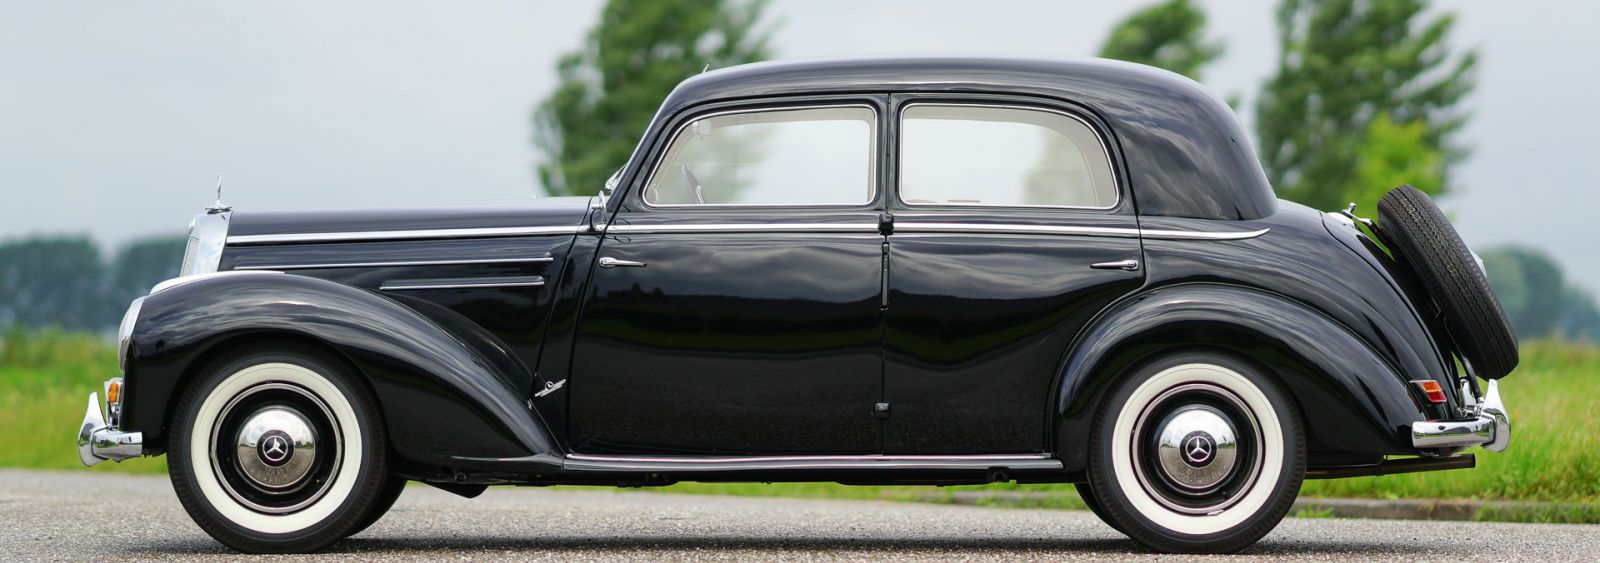 mercedes benz 220 limousine 1952 classicargarage de. Black Bedroom Furniture Sets. Home Design Ideas